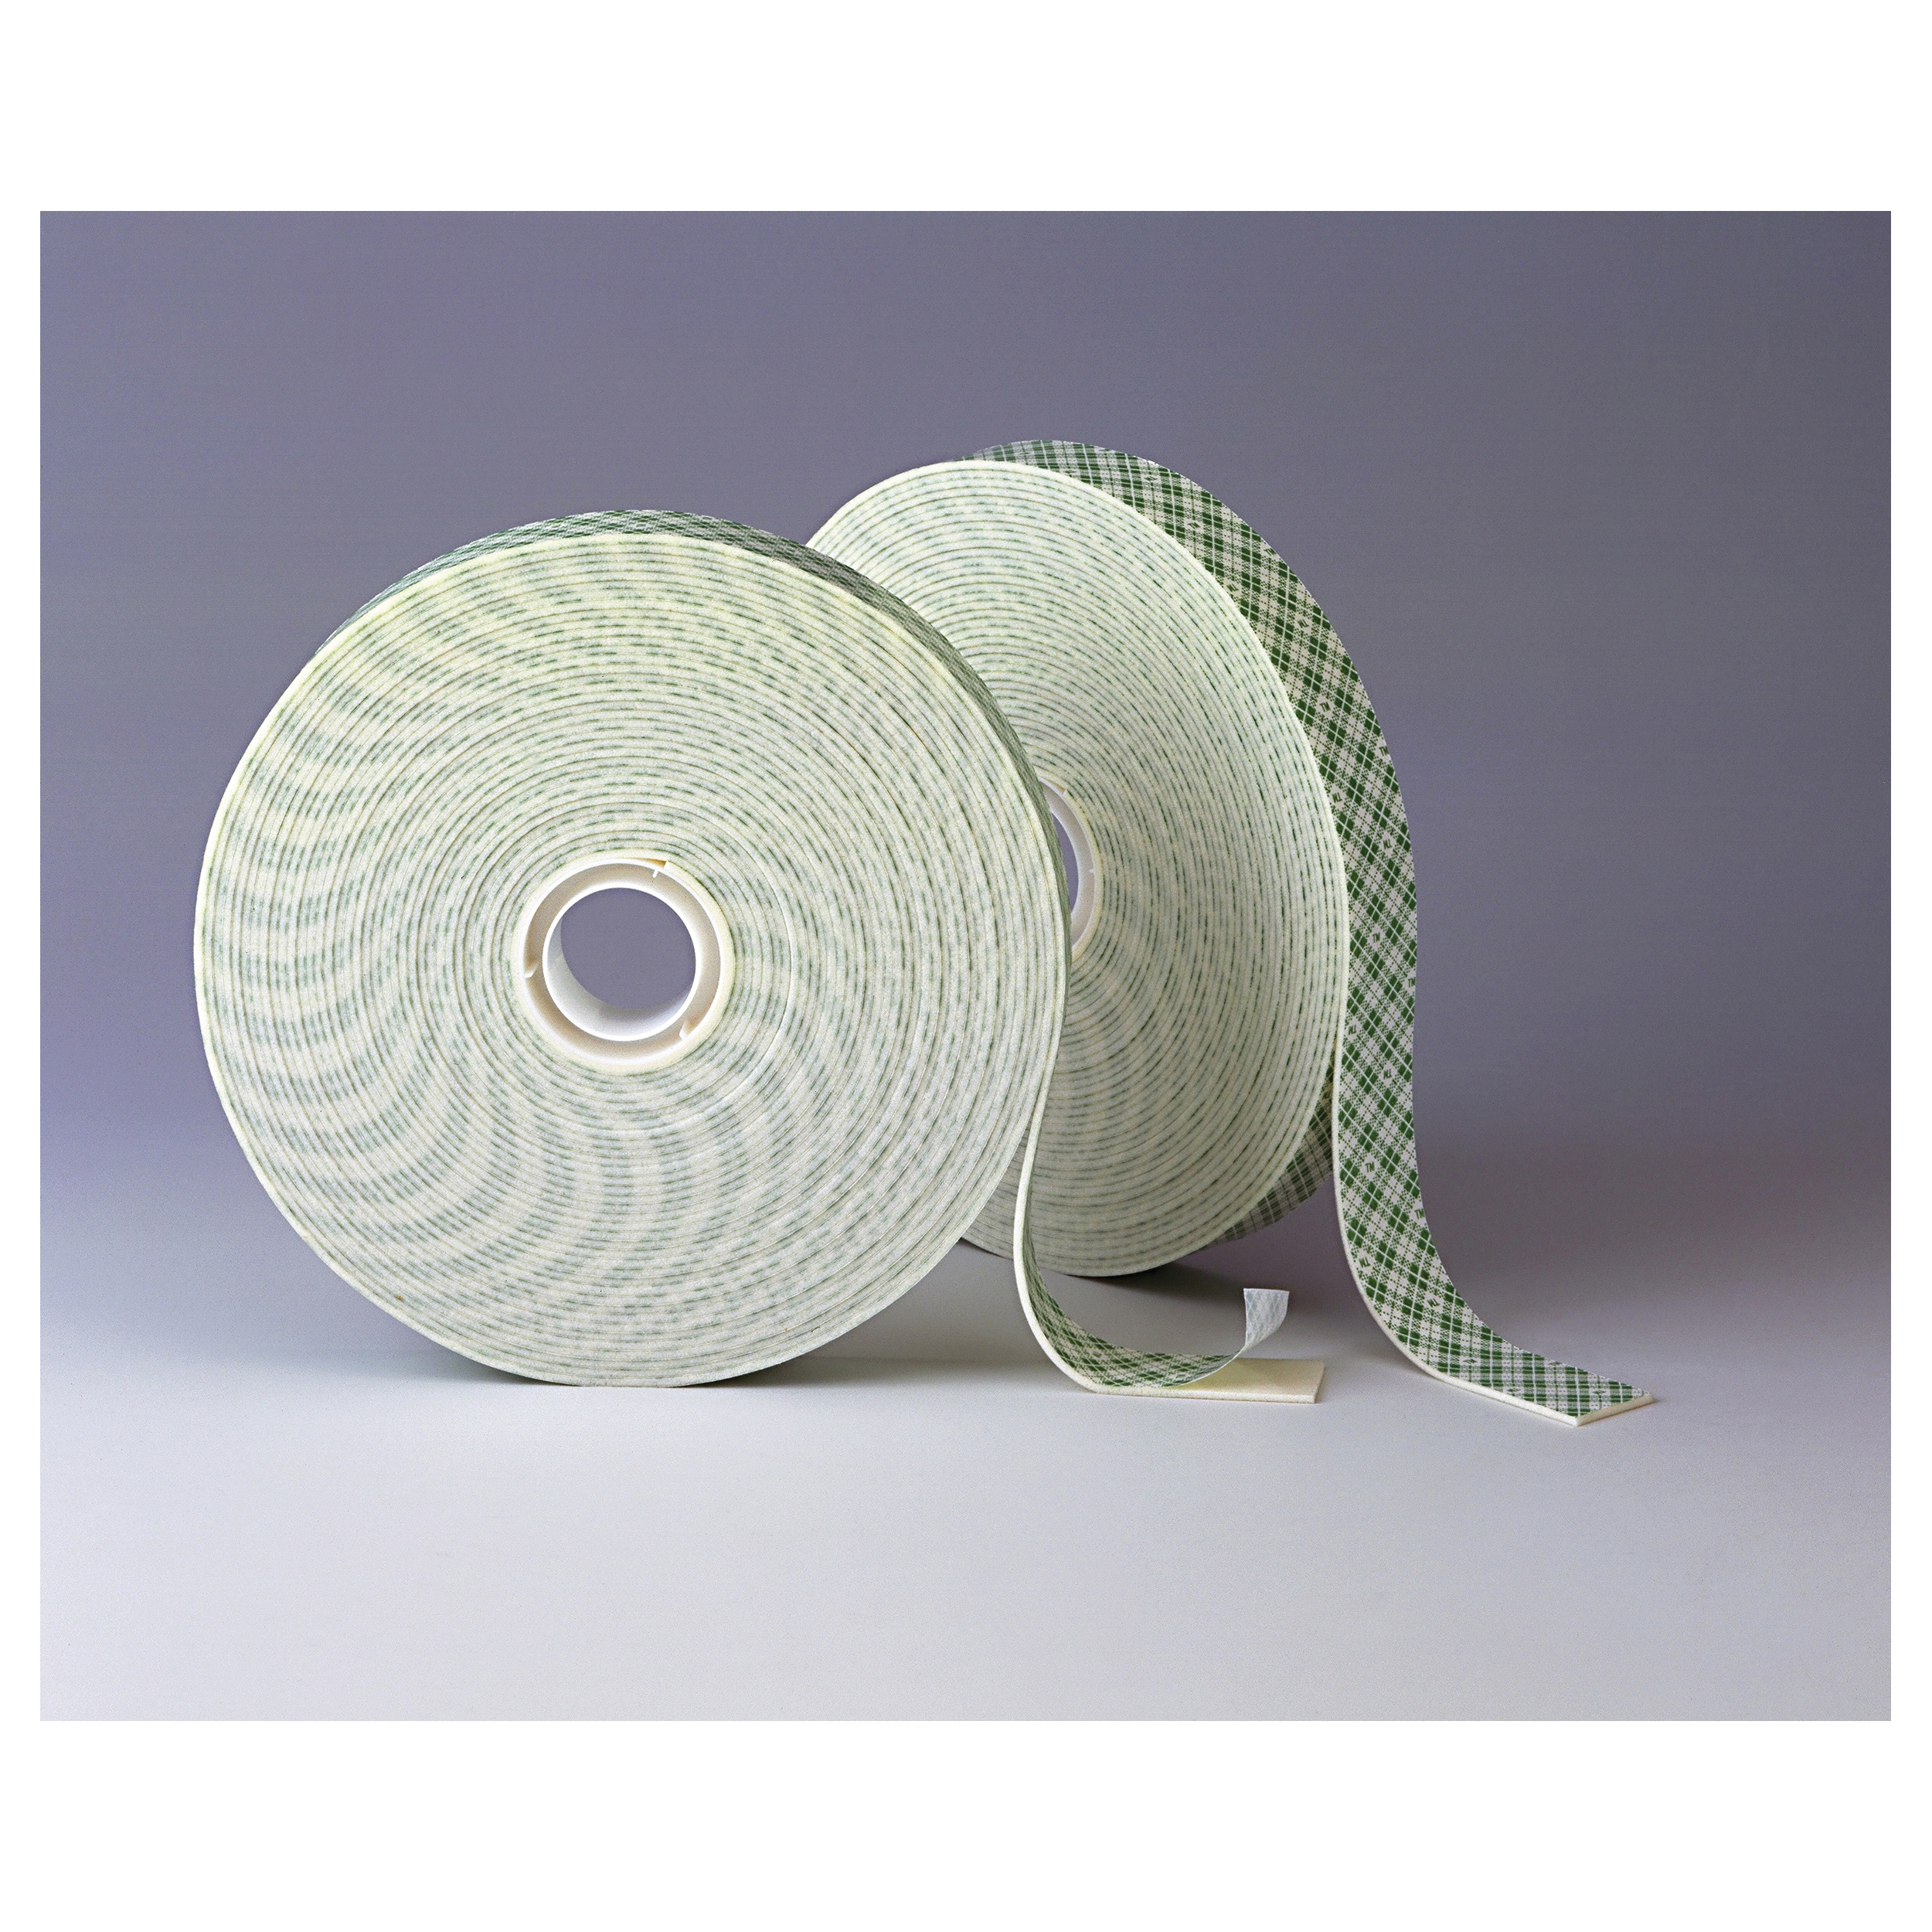 3M™ 021200-16992 Double Coated Tape, 36 yd L x 3 in W, 62 mil THK, Acrylic Adhesive, Urethane Foam Backing, Off-White